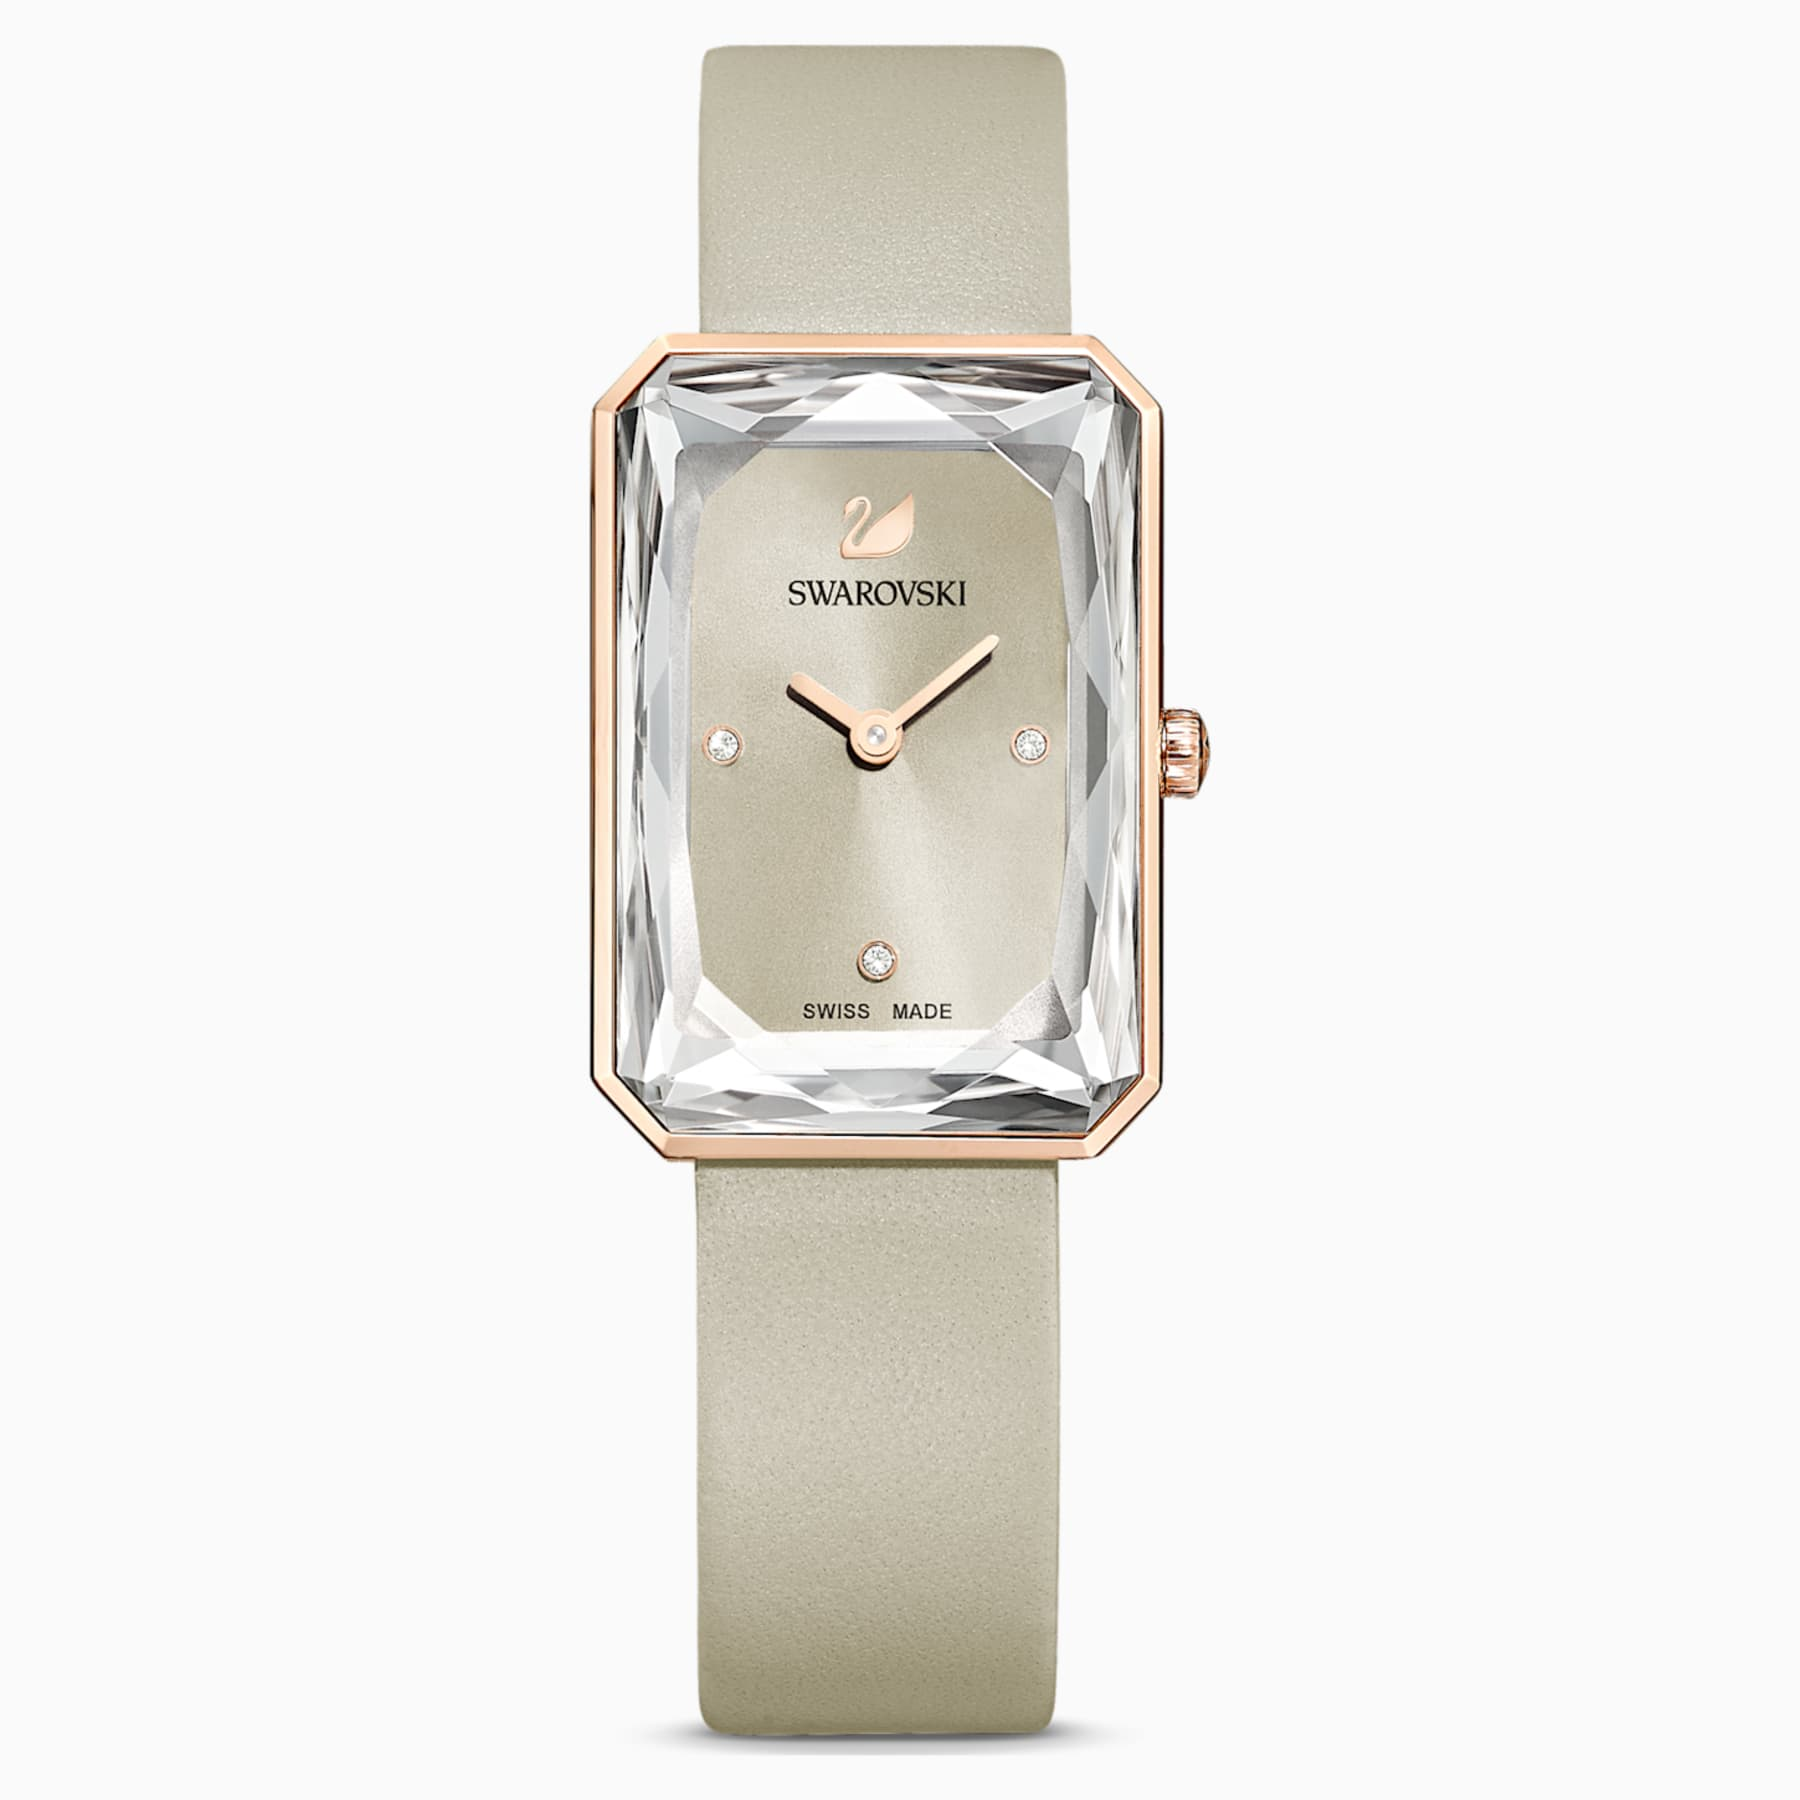 UPTOWN WATCH, LEATHER STRAP, GRAY, ROSE-GOLD TONE PVD